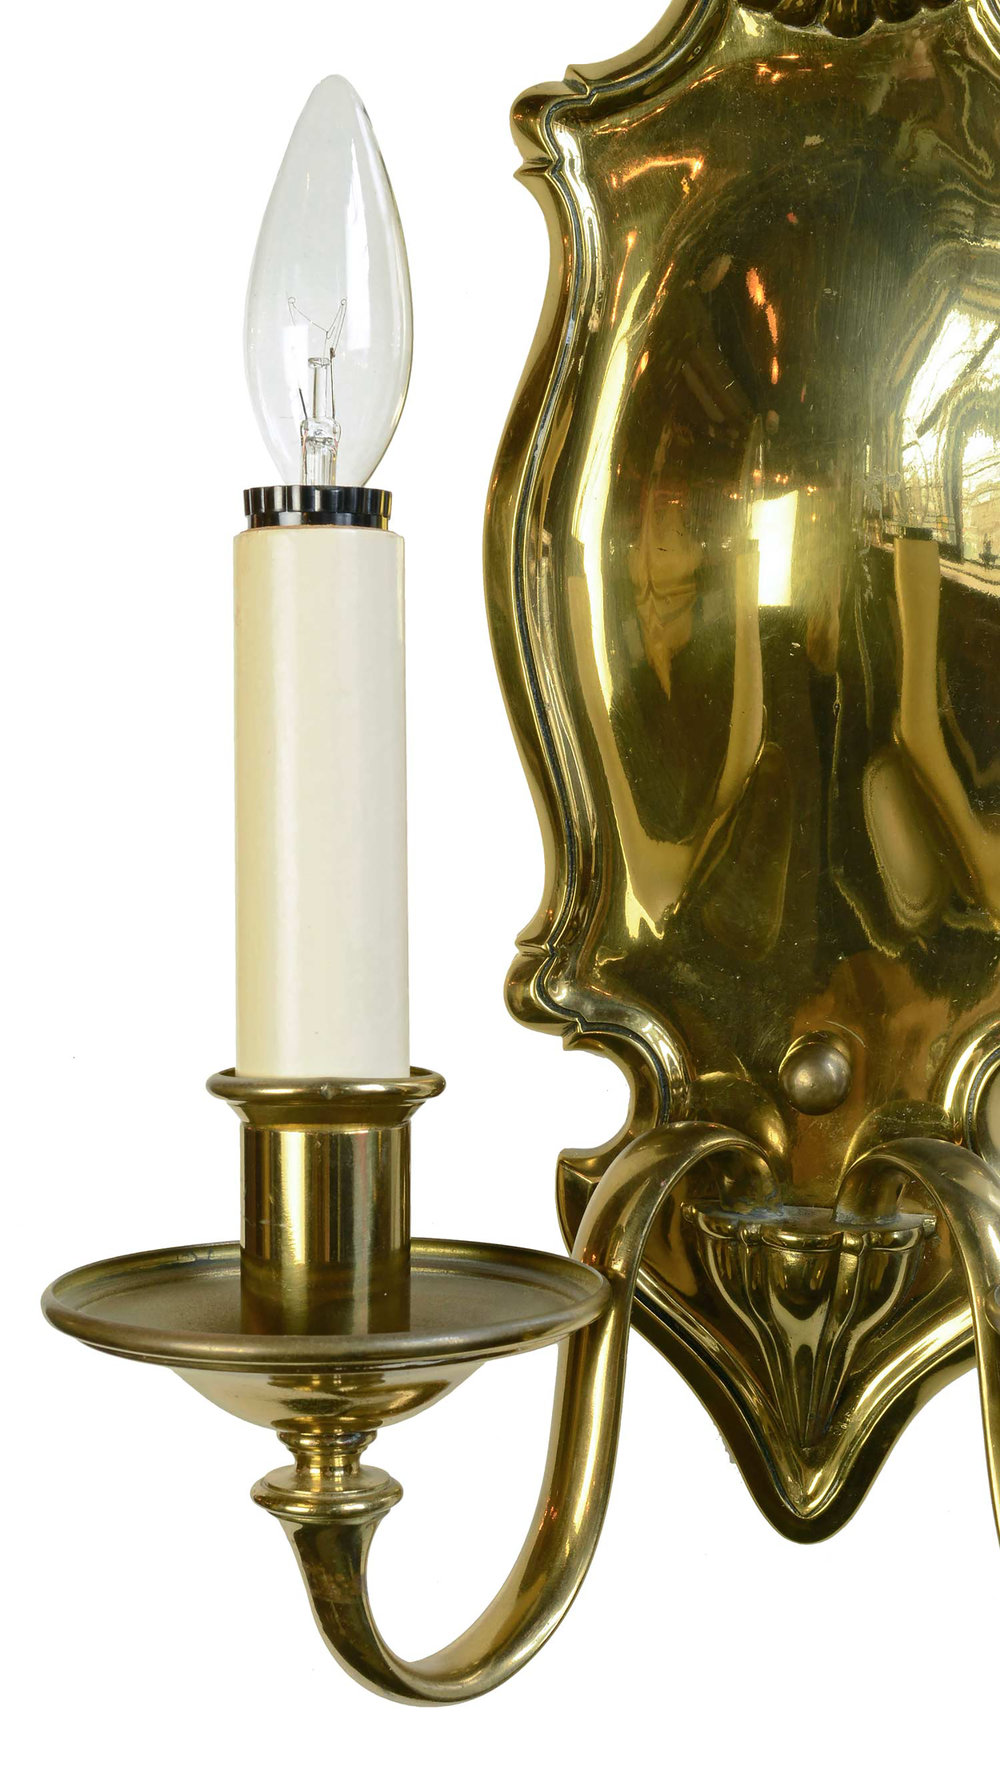 45844-bradley-hubbard-brass-two-candle-sconce-arm.jpg